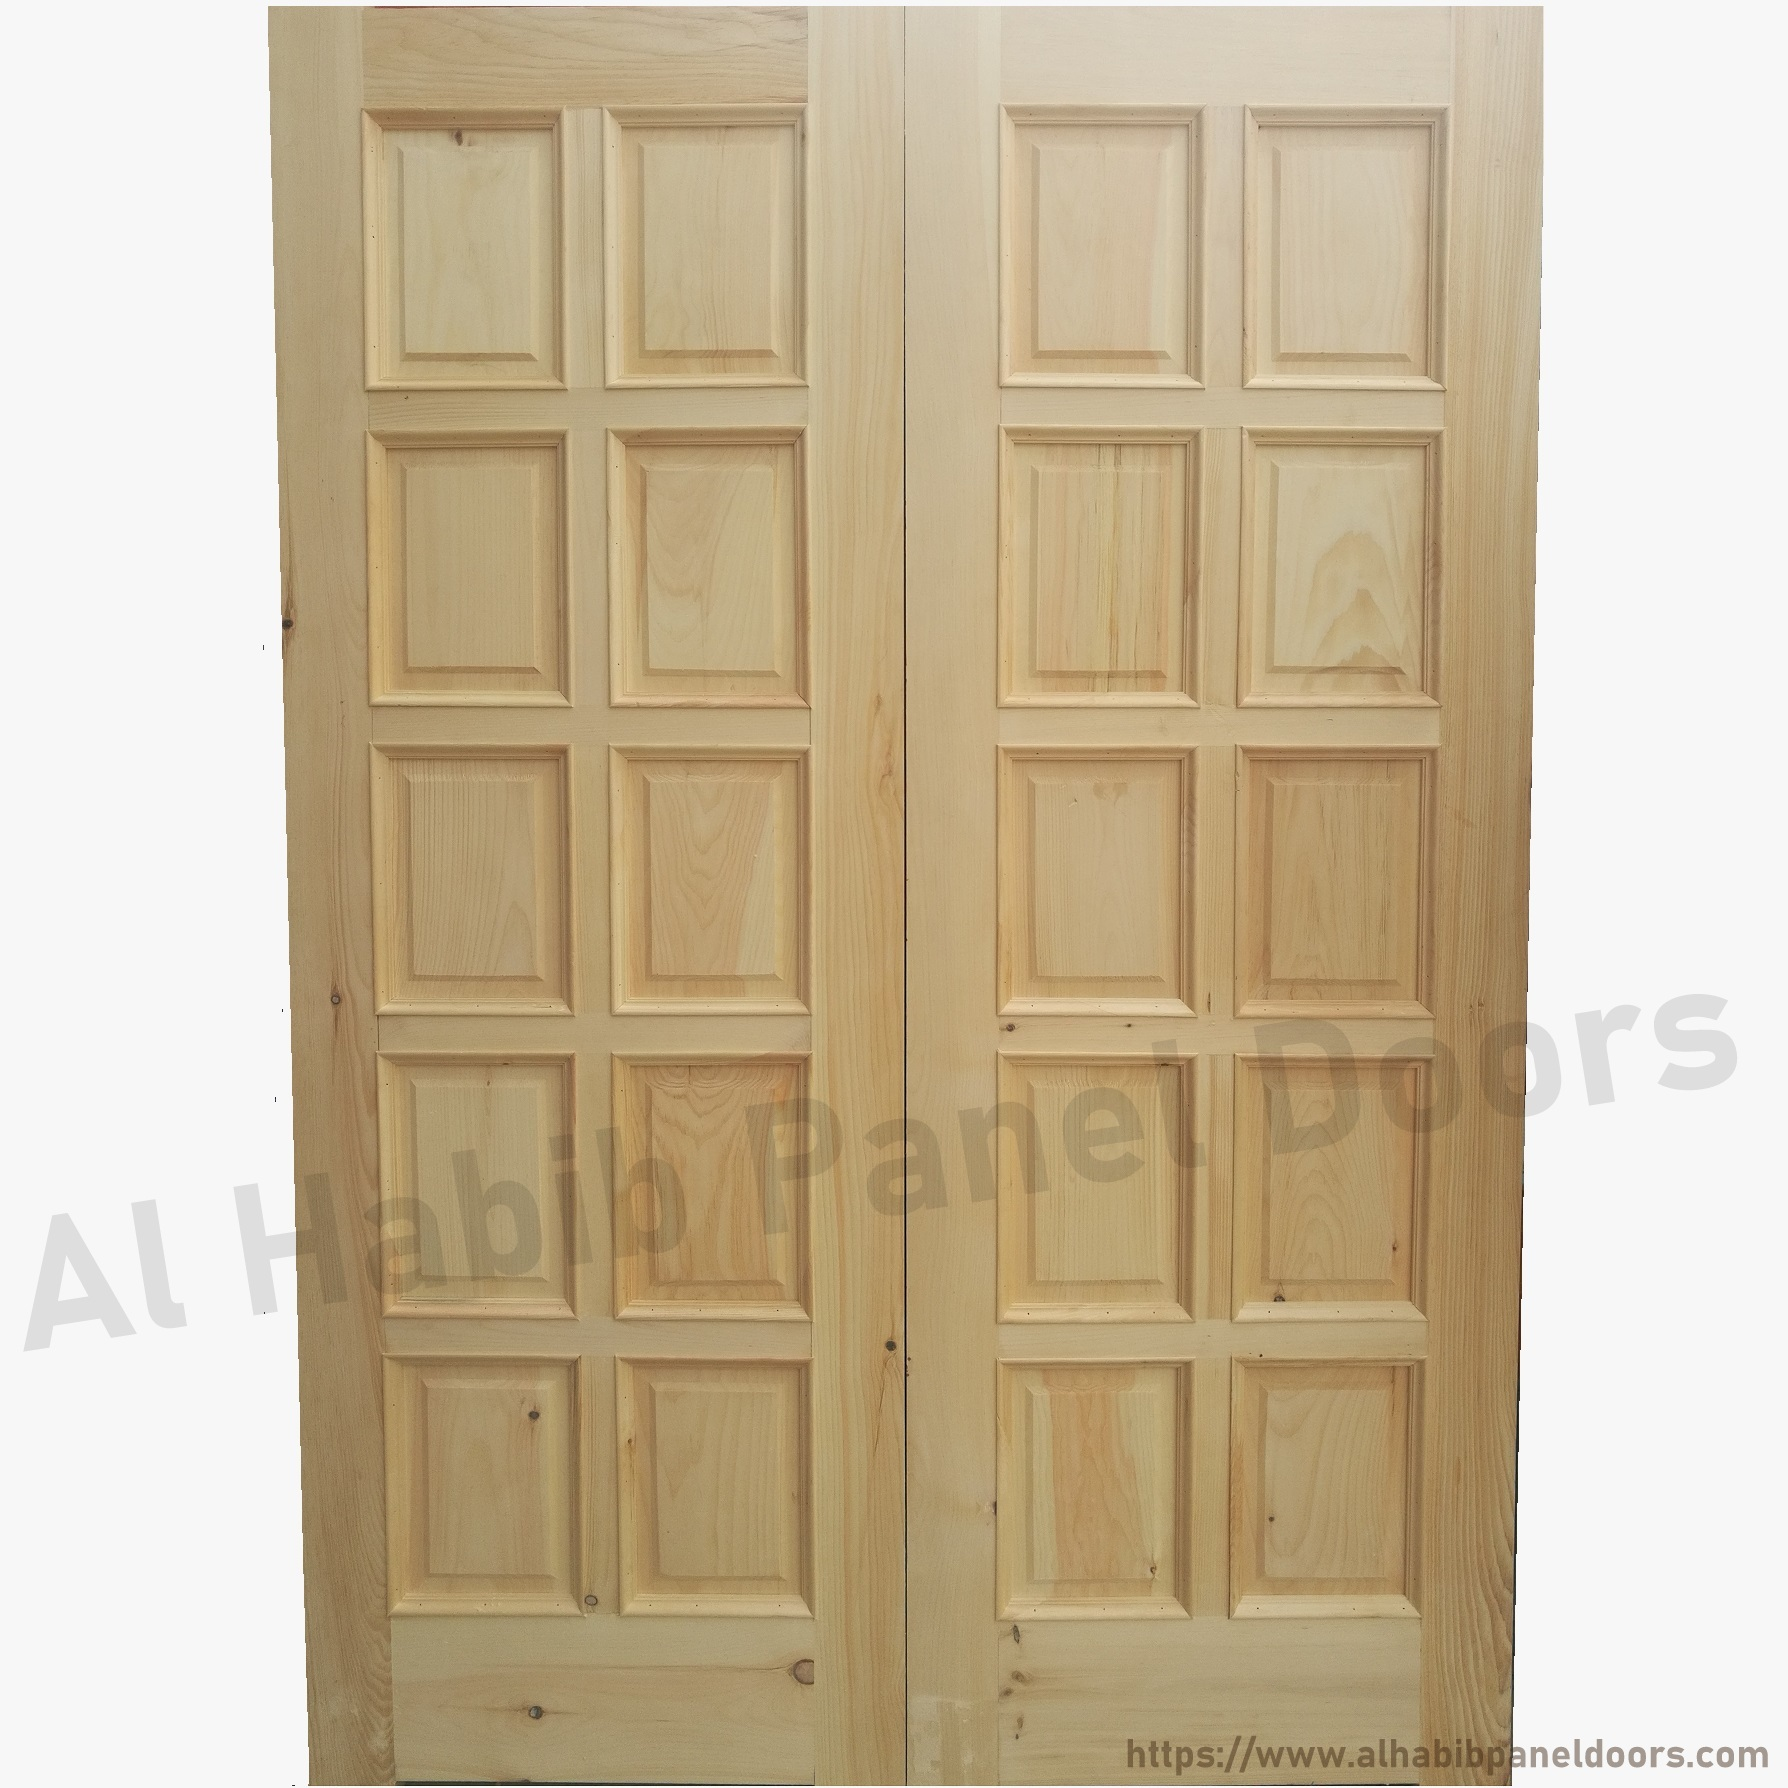 Latest wooden main double door designs native home for Latest main door